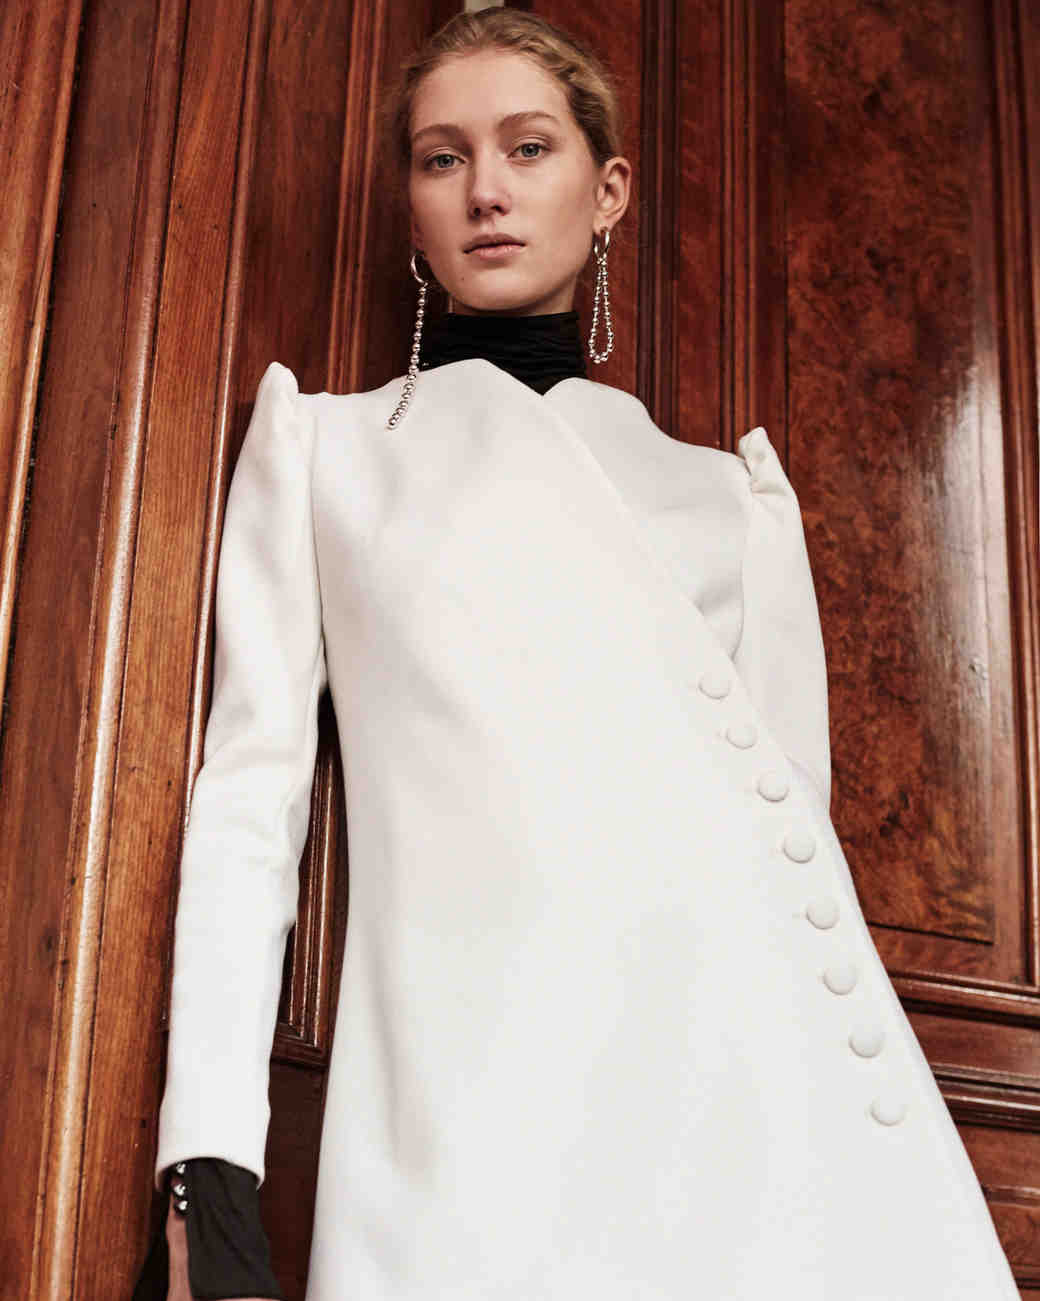 Lein wedding dress spring 2019 long sleeve high neck jacket with black collar